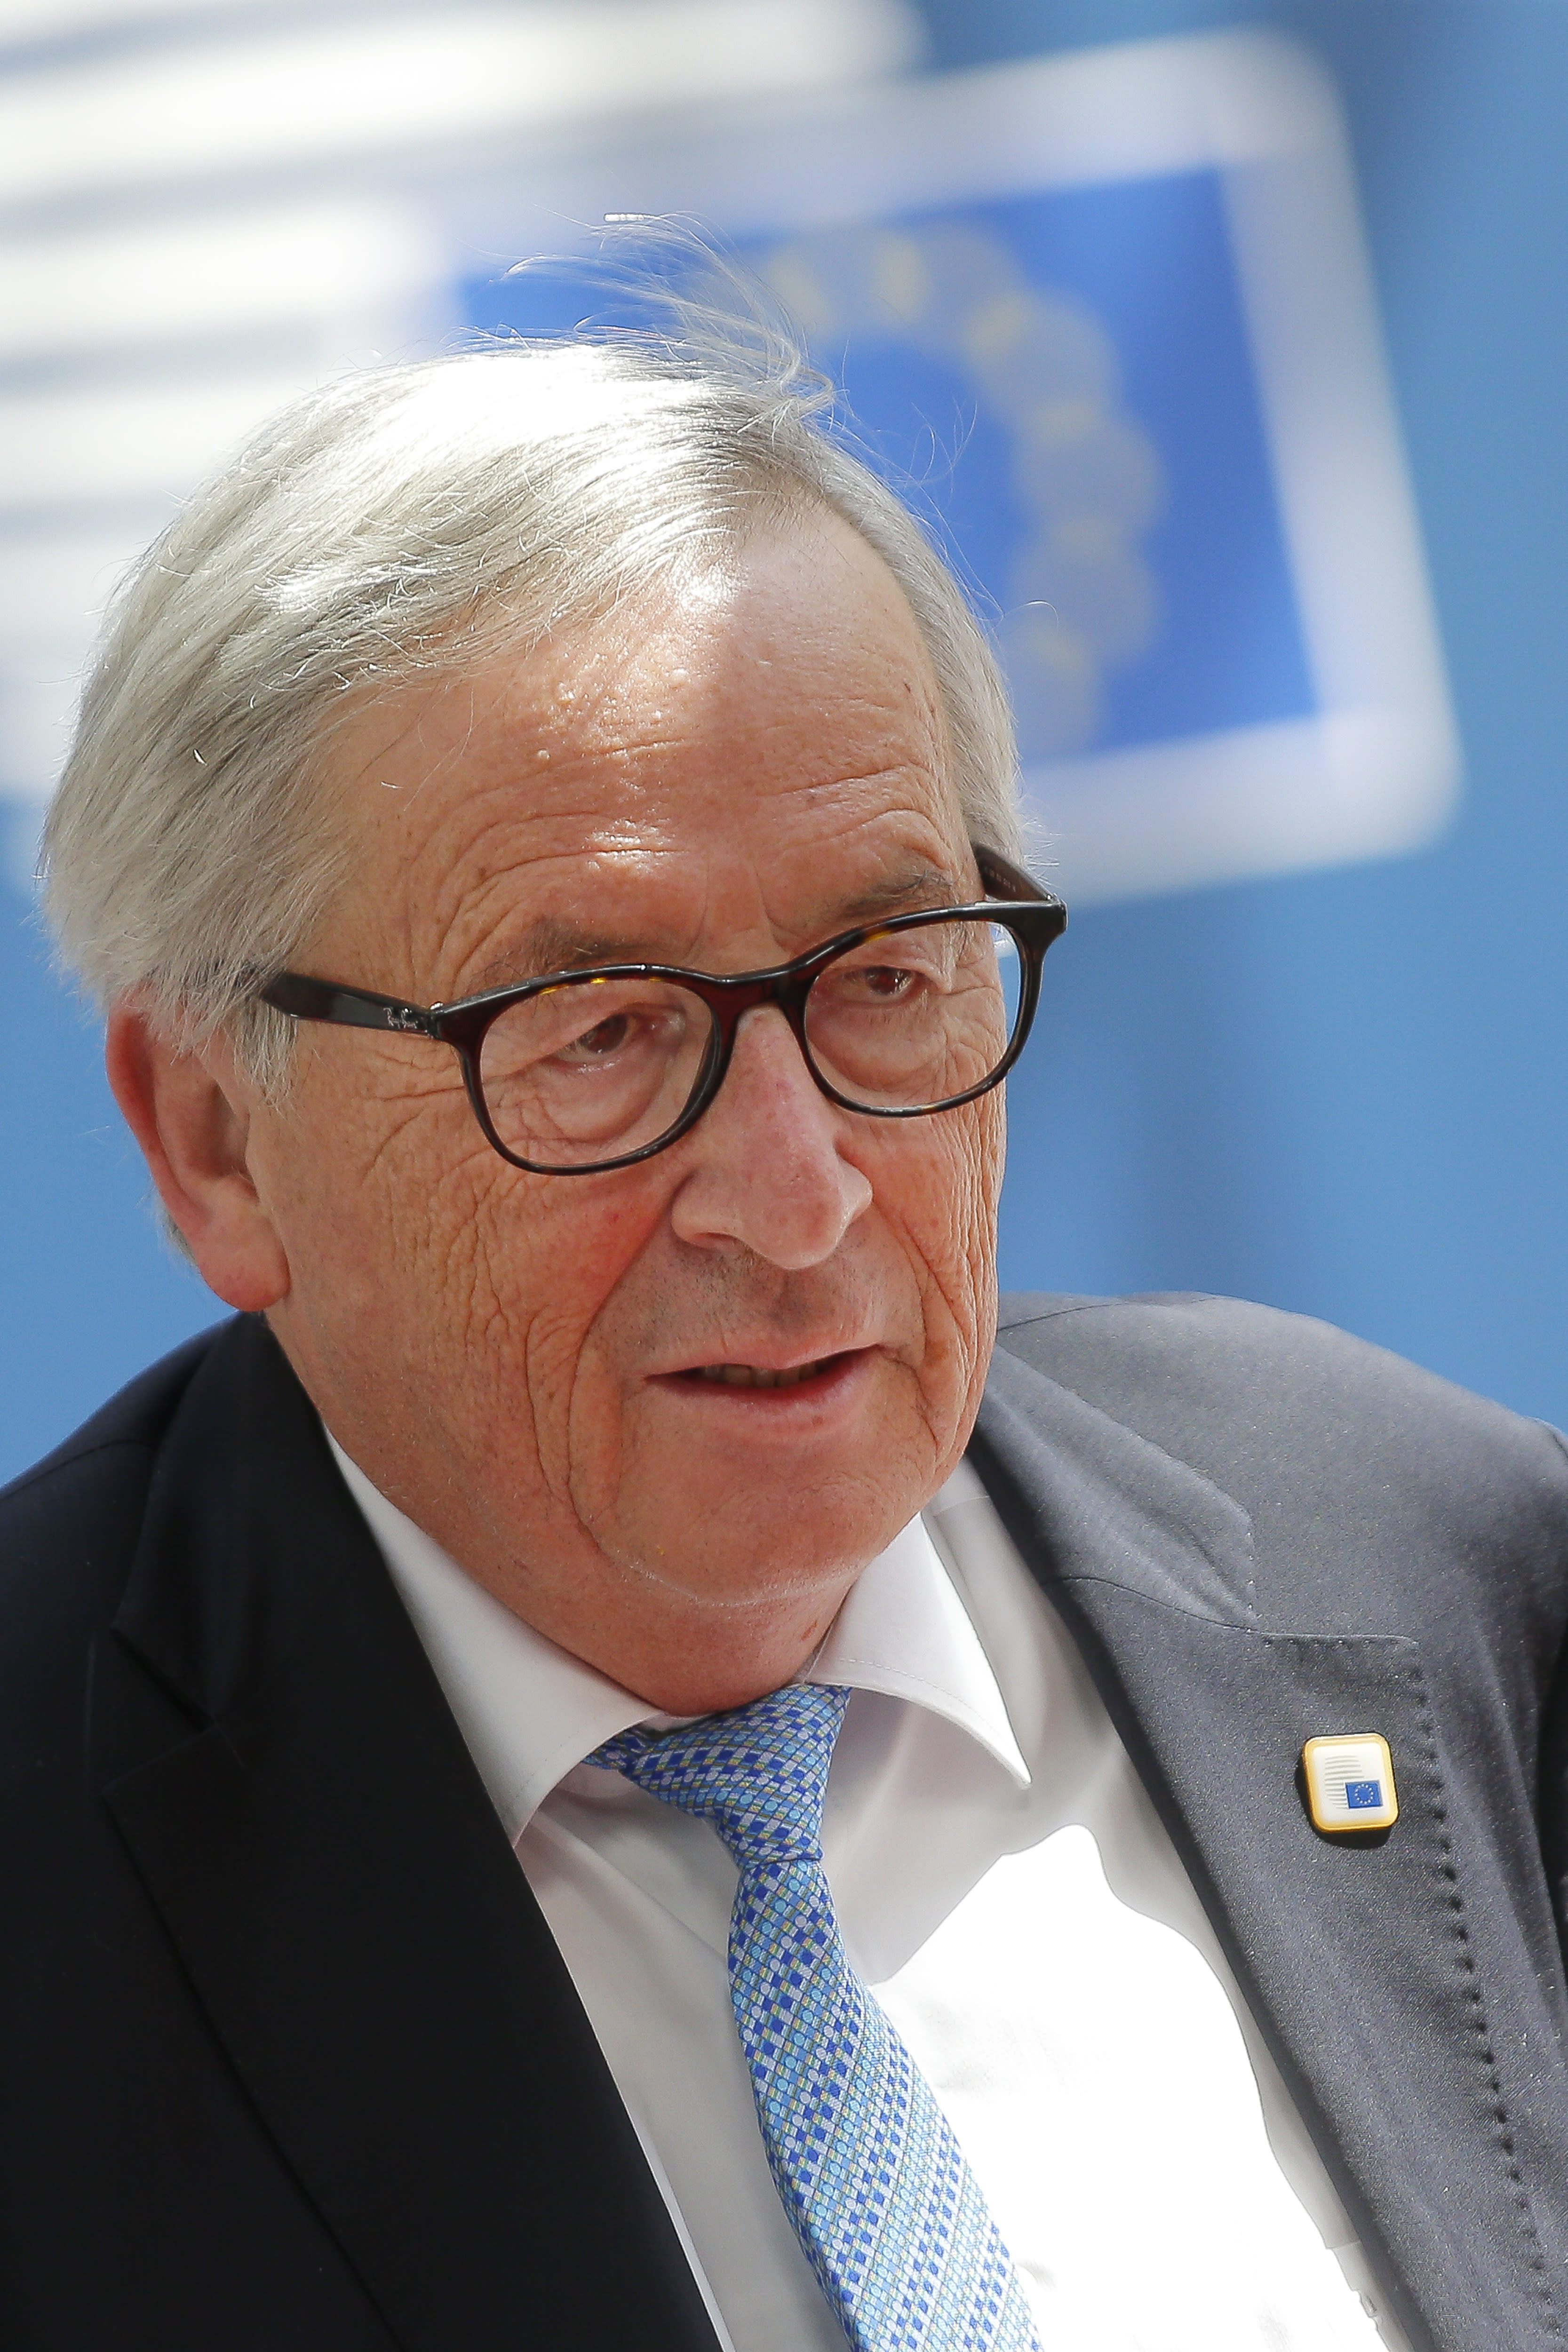 The Latest: Juncker: filling Europe's top jobs won't be easy